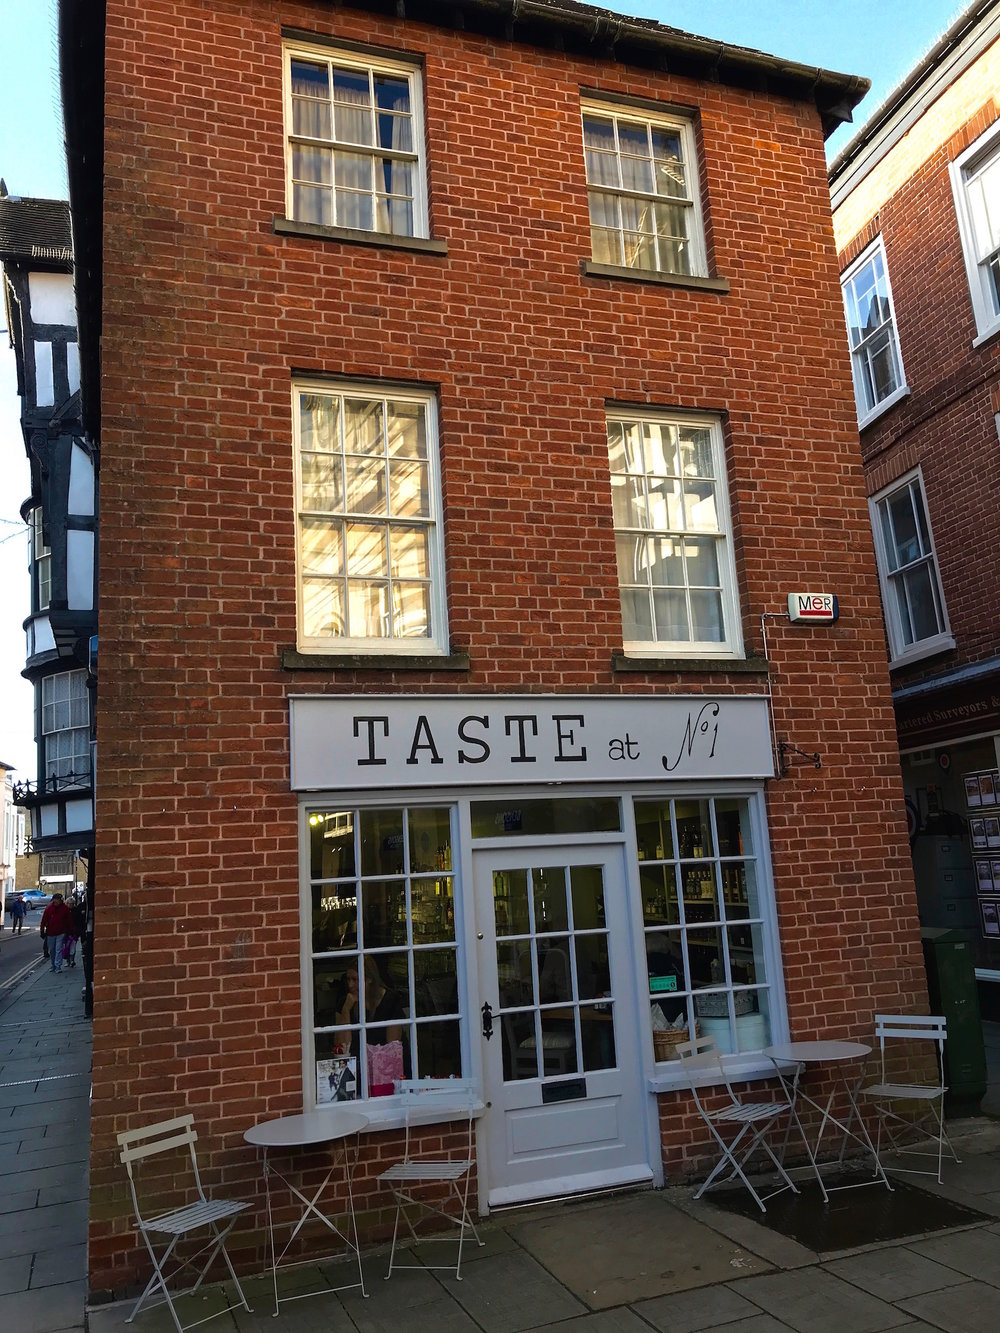 Taste at No1, Ludlow.jpg